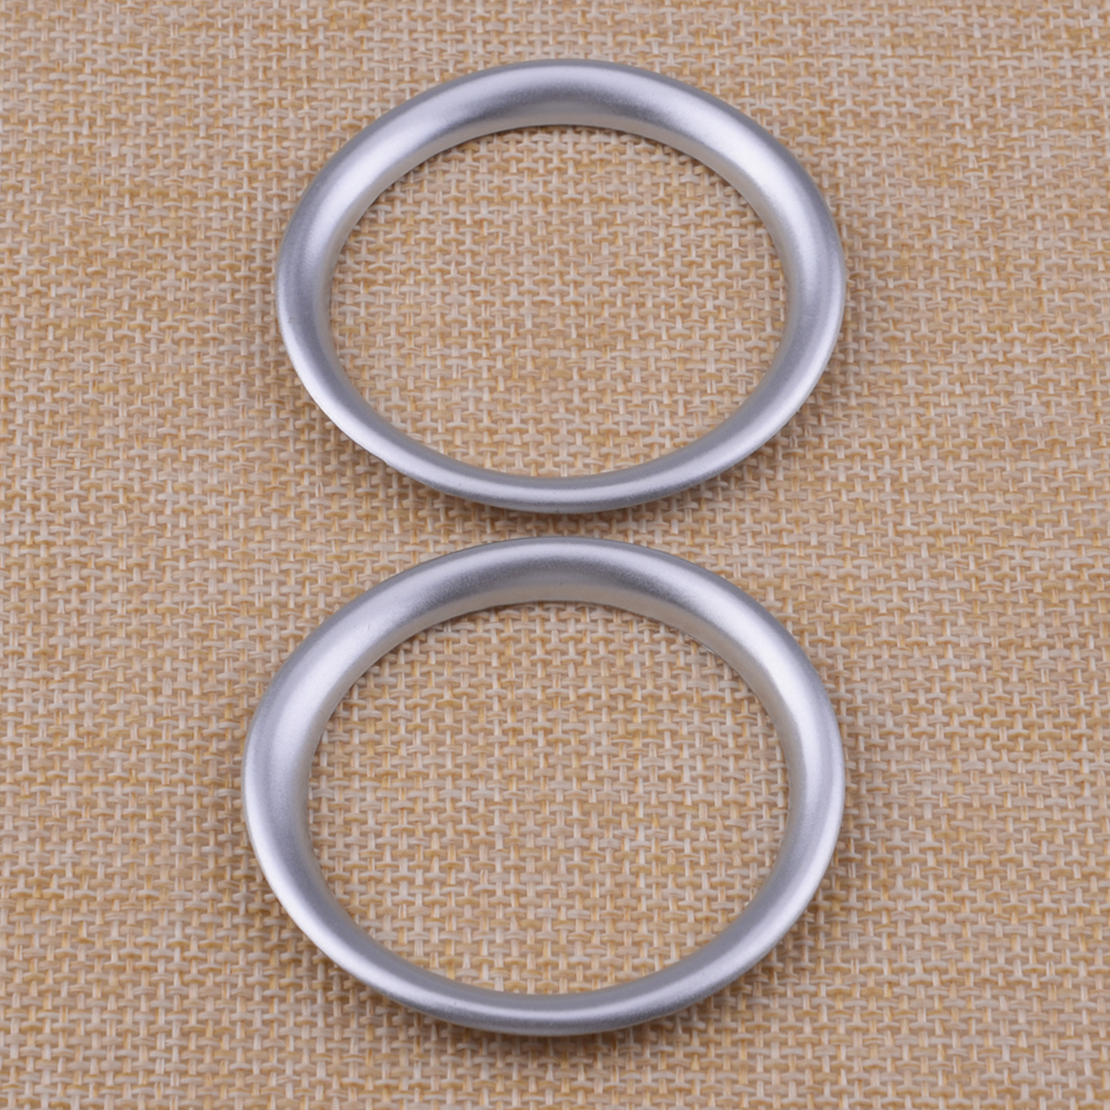 CITALL 2pcs Chrome Plated Car Inner Front Pillar Door Stereo Speaker Trim Ring Fit for Mazda <font><b>CX</b></font>-<font><b>5</b></font> 2nd 2017 <font><b>2018</b></font> image